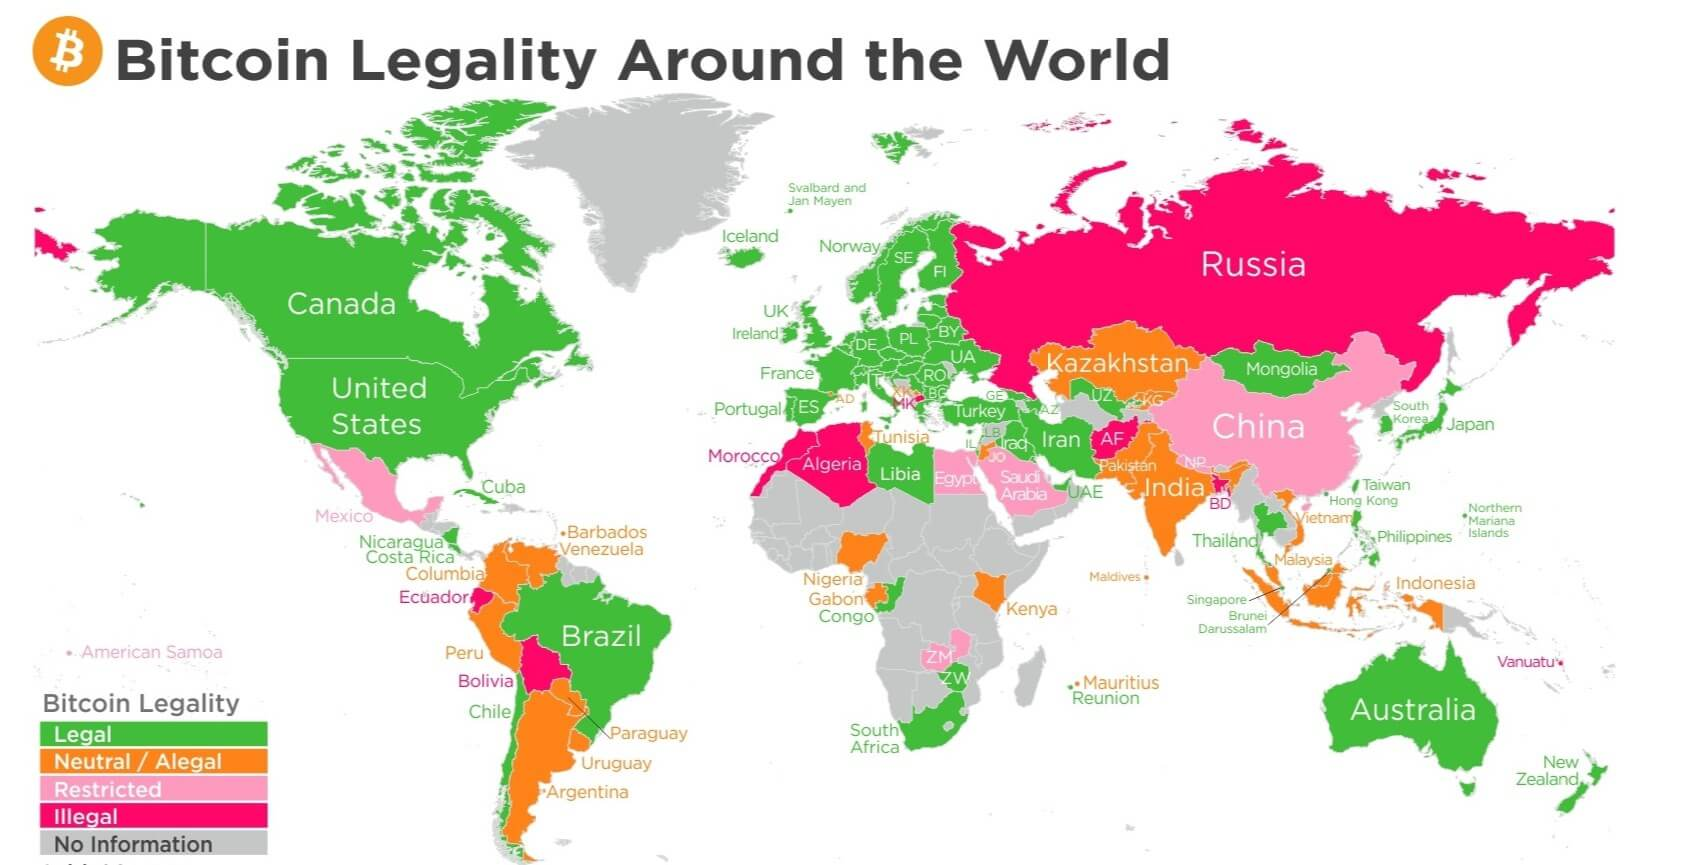 Bitcoin legality by country